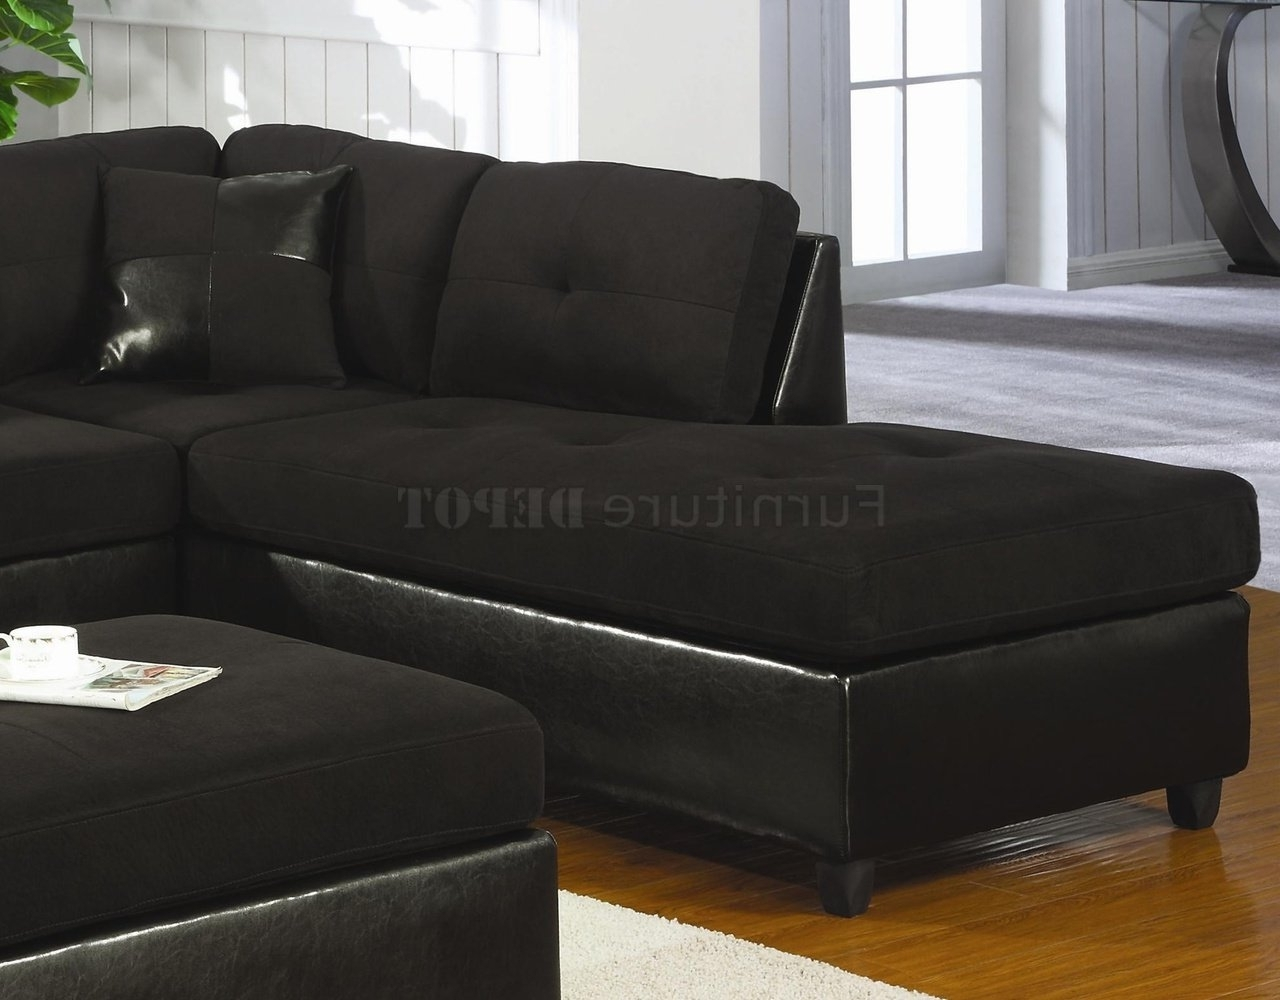 Black Microsuede Couch (View 2 of 20)